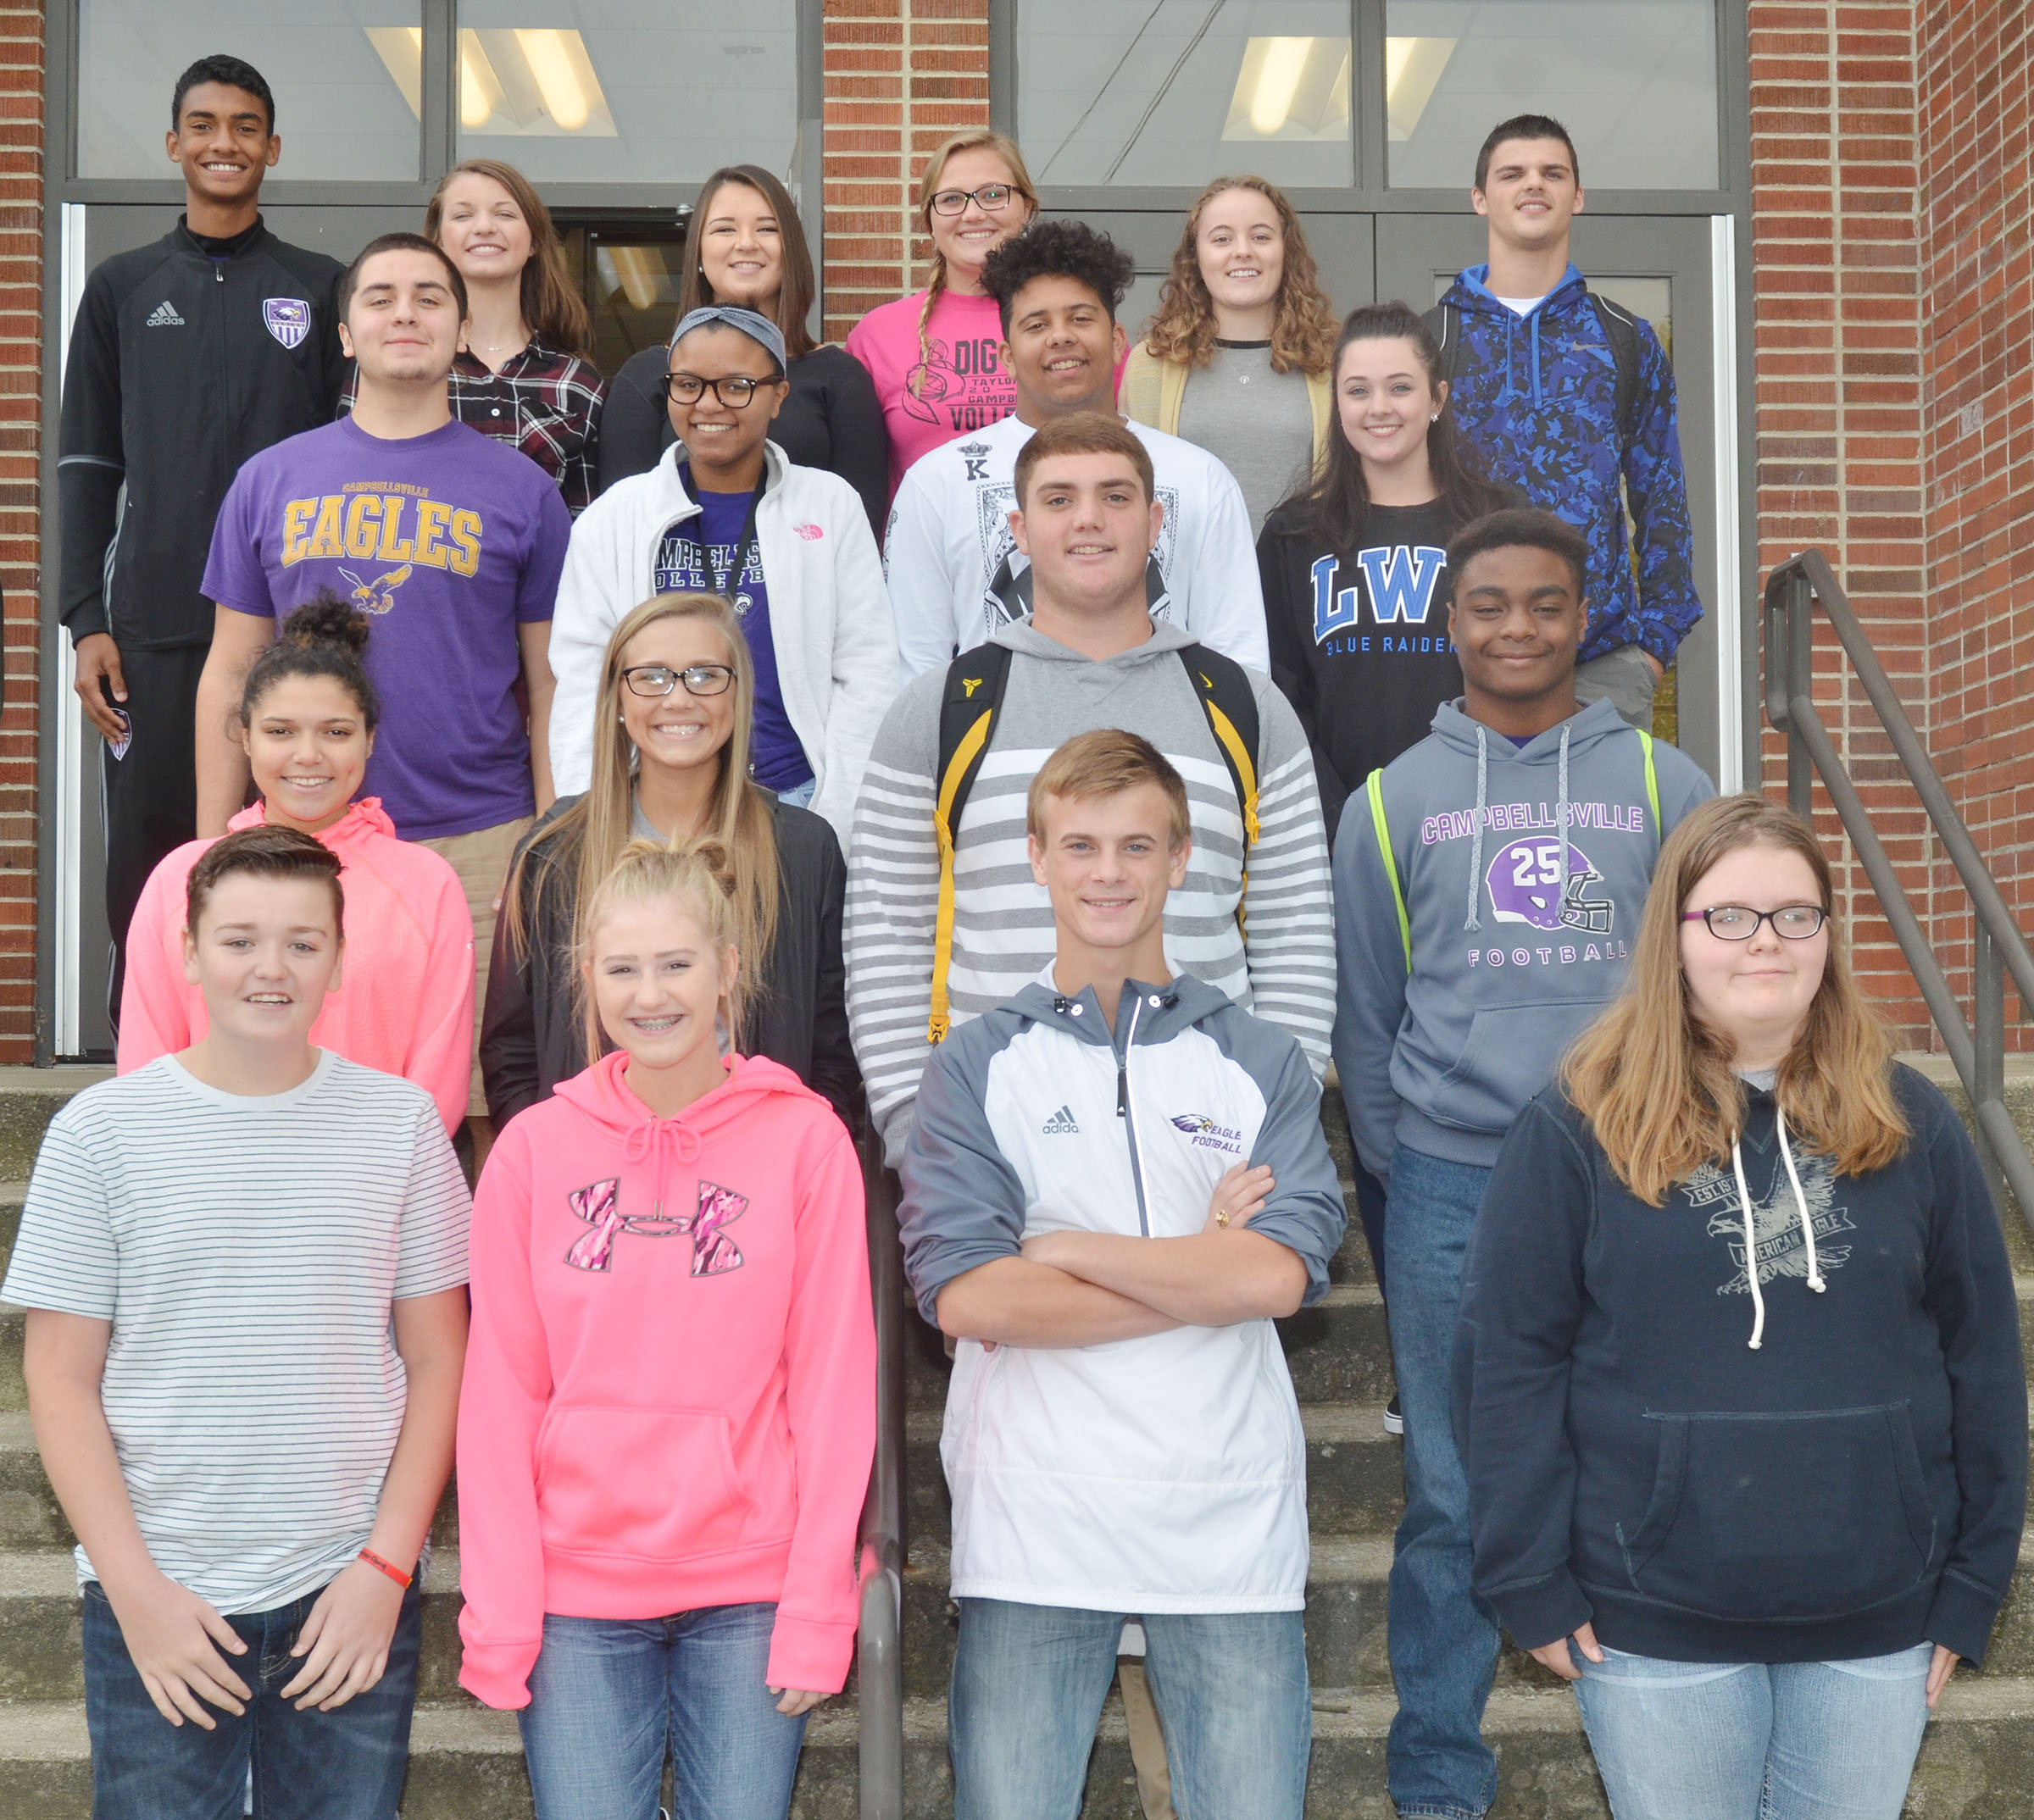 This year's CHS football homecoming candidates are, from left, front, freshmen Gavin Johnson, Isabella Osborne, Matthew Oliver and Taylor Brewer. Second row, sophomores Mariah Lowery, Tatem Wiseman, Lane Bottoms and Charlie Pettigrew. Third row, juniors Josh Tamez, Etiyah Thompson, Adrian Richardson and Missy Vanorder. Back, seniors Daniel Silva, Caylie Blair, Kailey Morris, Brenna Wethington, Caroline McMahan and Stone Williams. Absent from the photo are seniors Logan Brown and Murphy Lamb.